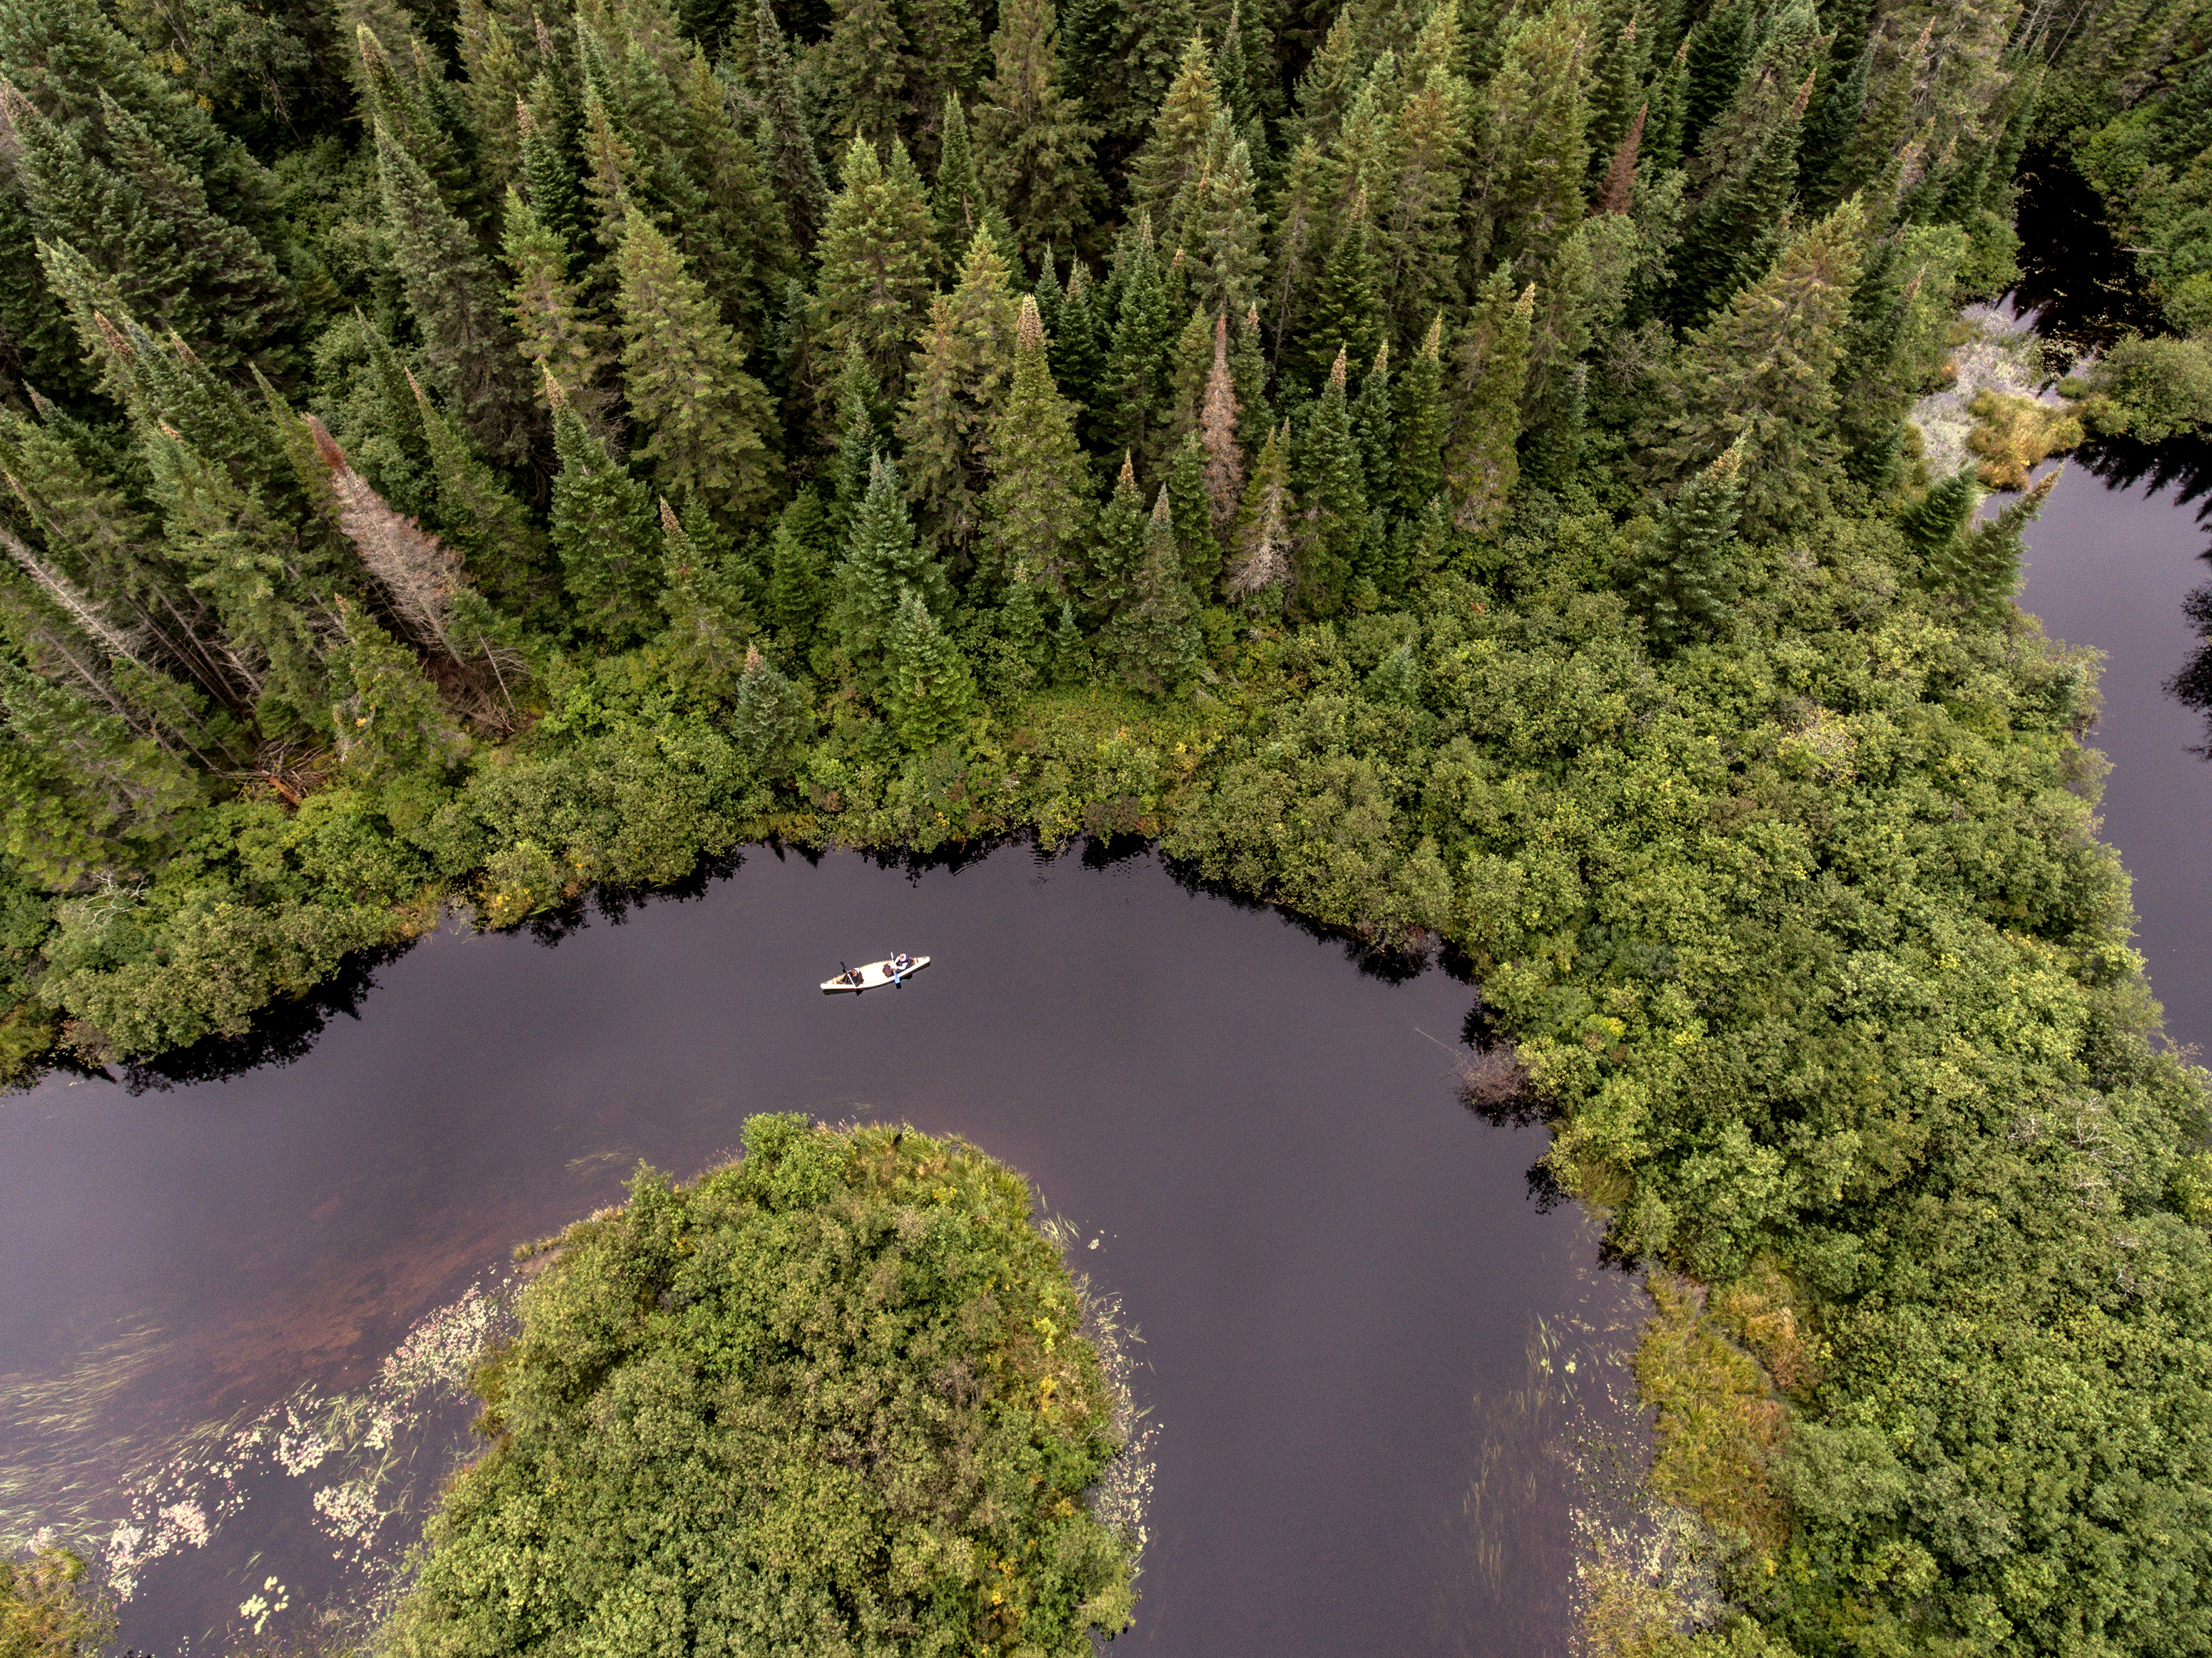 Wild Forest Canada aearial view of kayak kayaking or canoe canoeing boat on a river into a lake birds eye view veins mother nature pine tree.